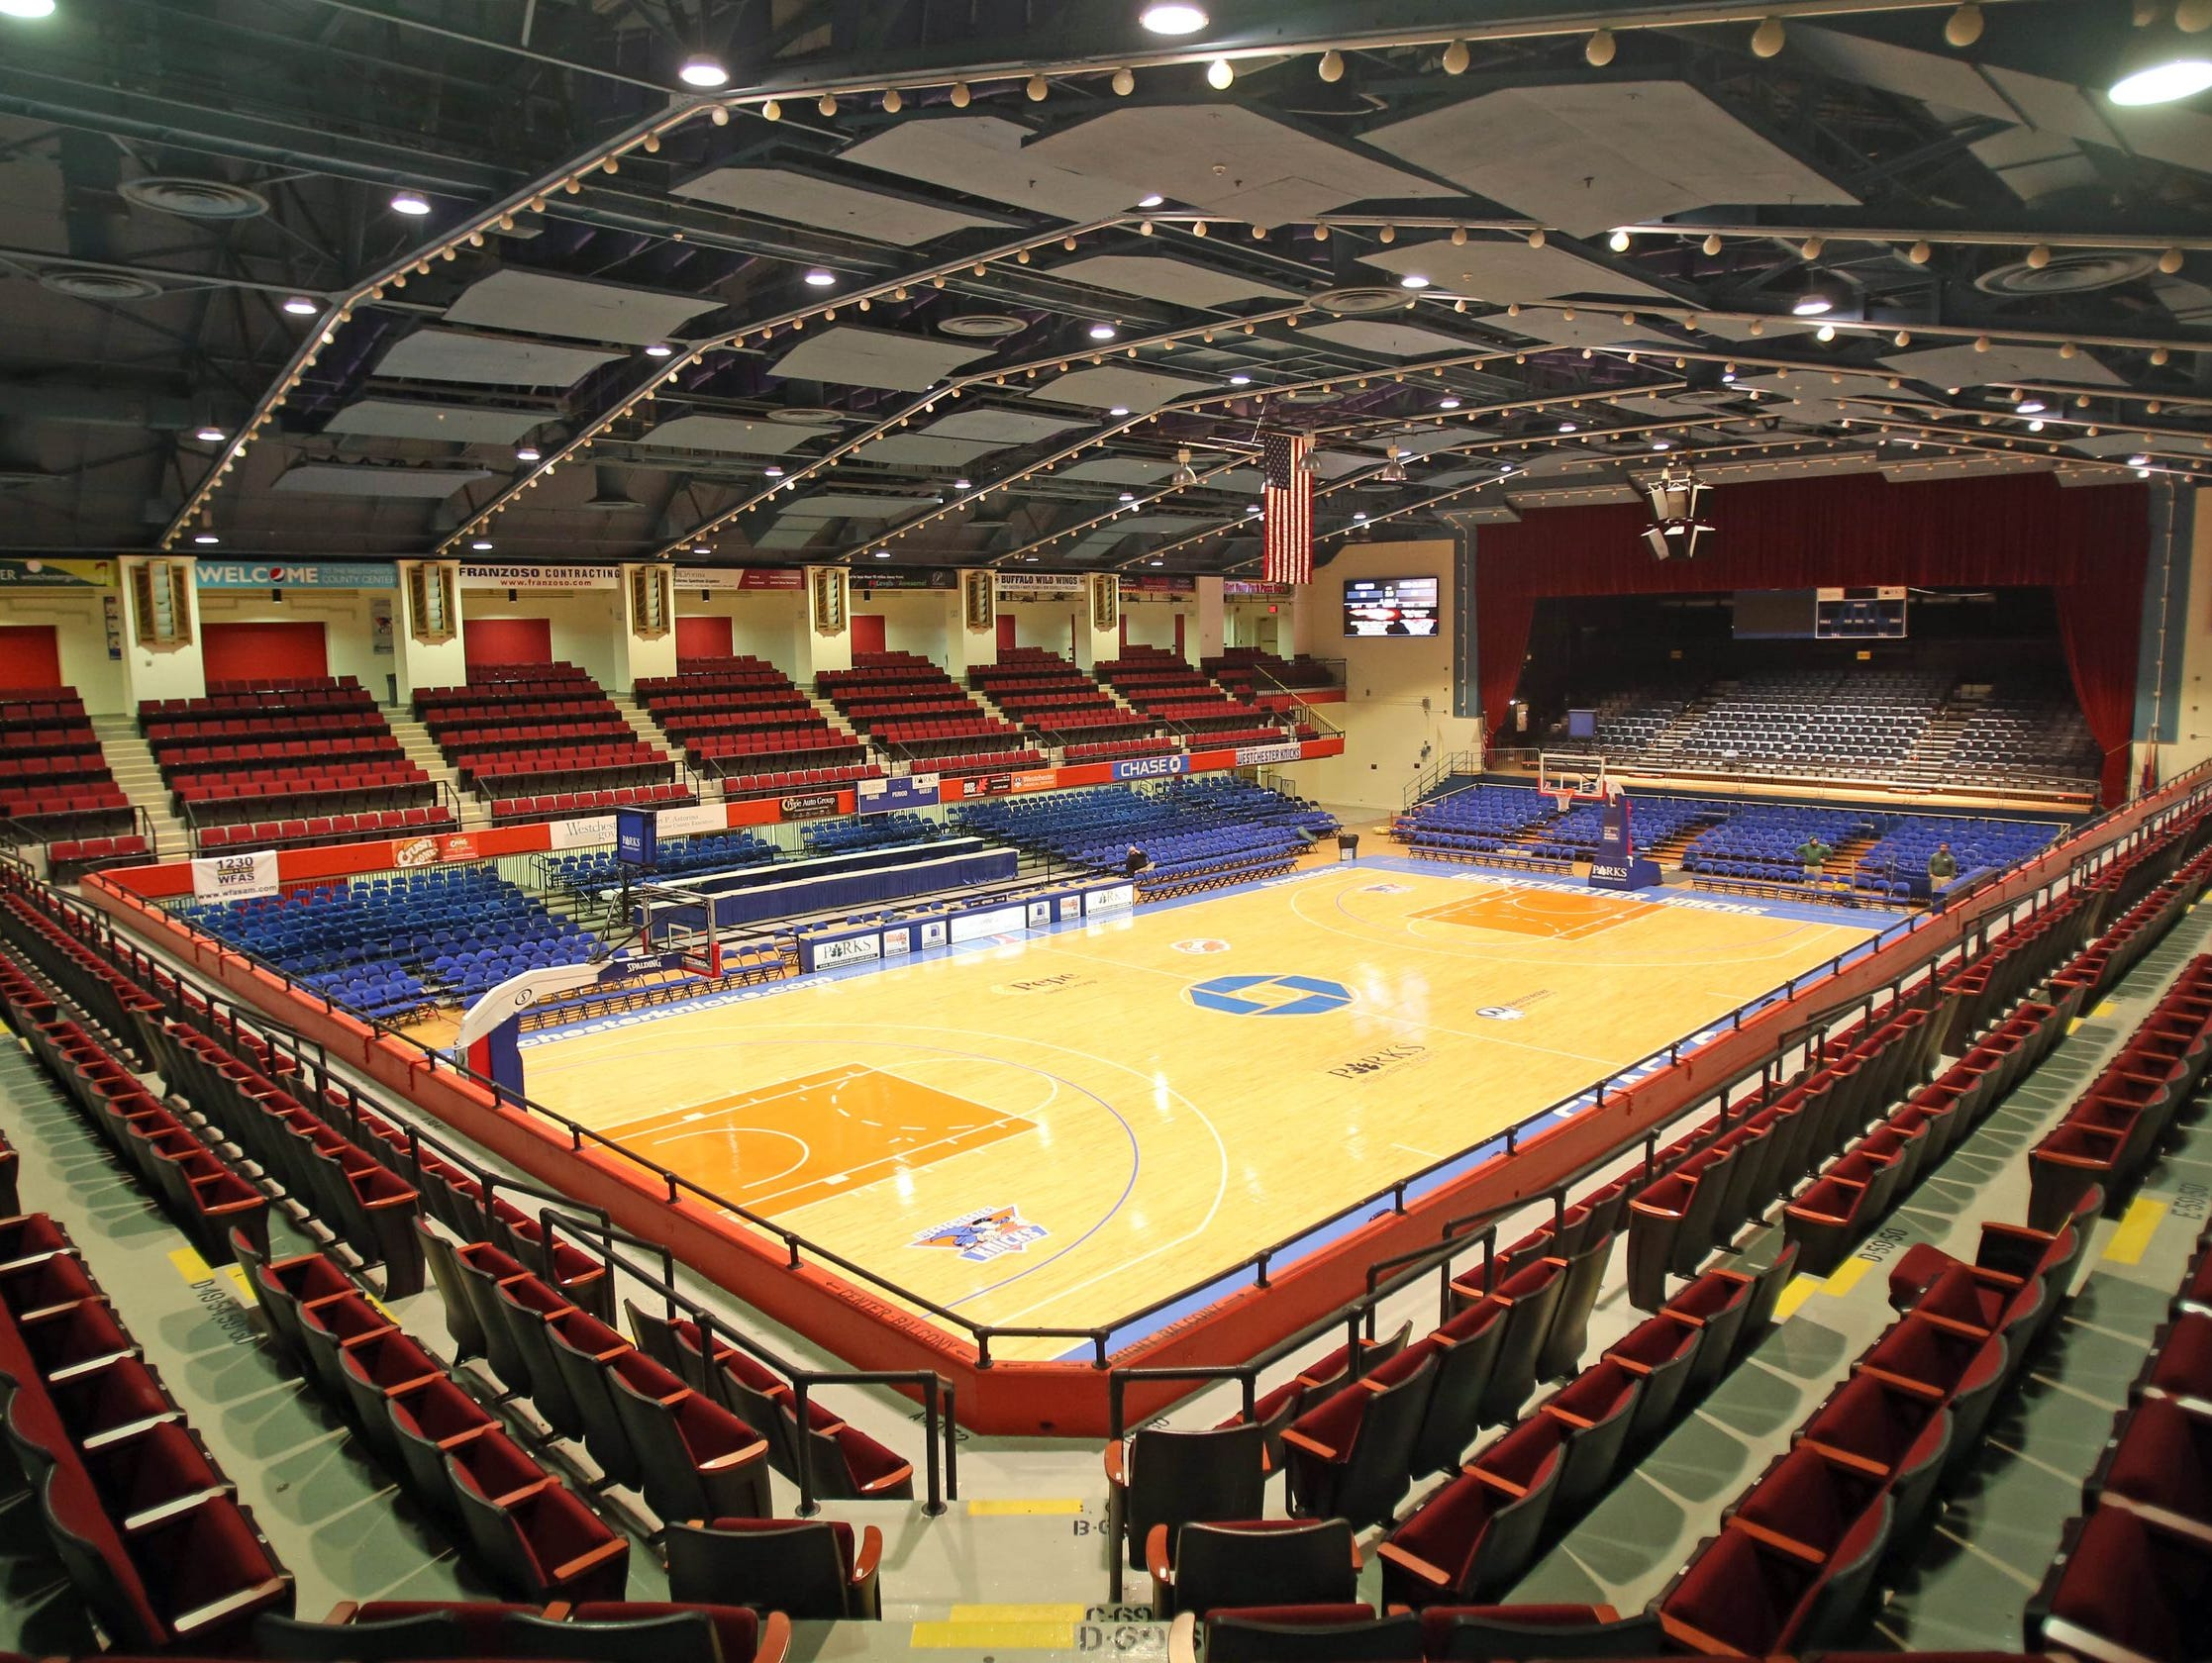 The Westchester County Center will host the Section 1 basketball tournament semifinals and finals from Feb. 22-28, 2016.